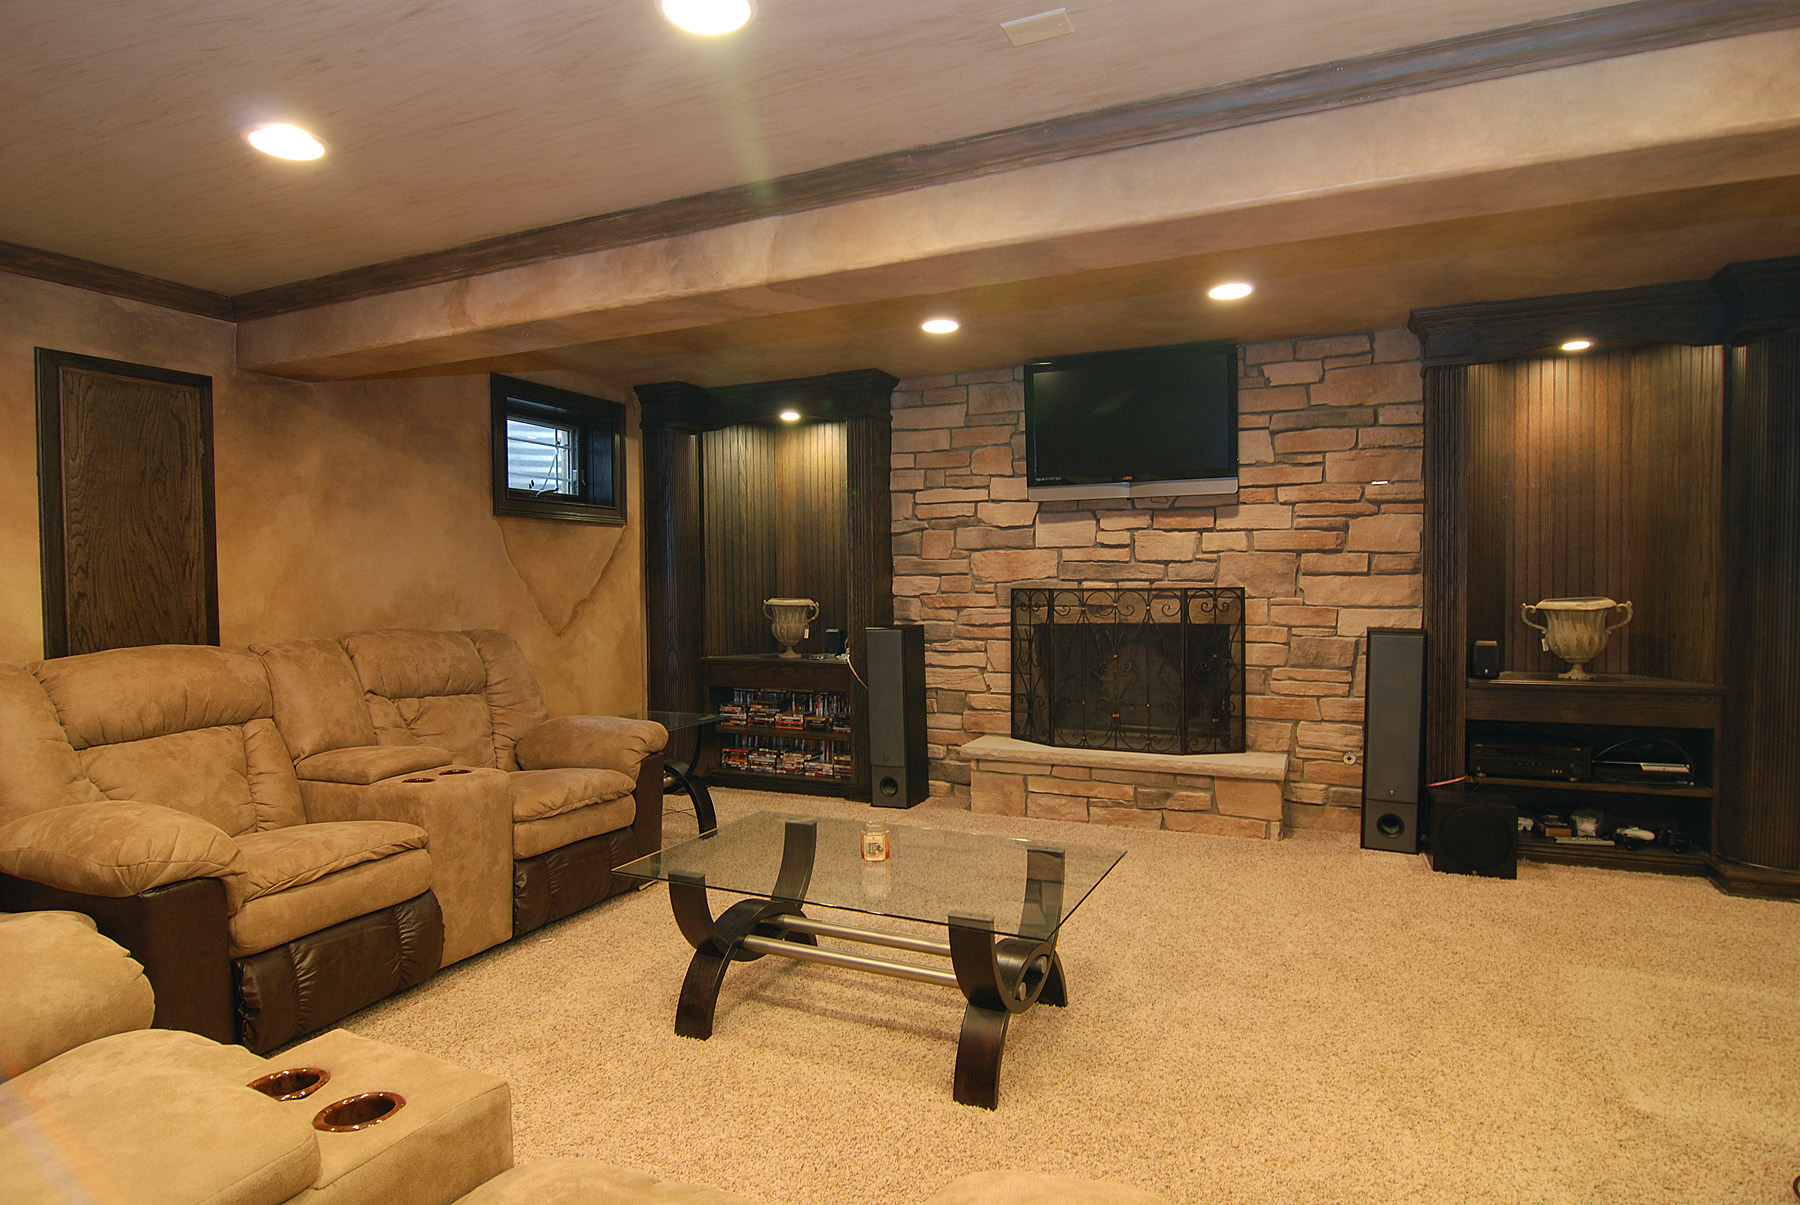 Chicago basement remodeling basement remodel chicago basement finishing homewerks - Finish basement design ...